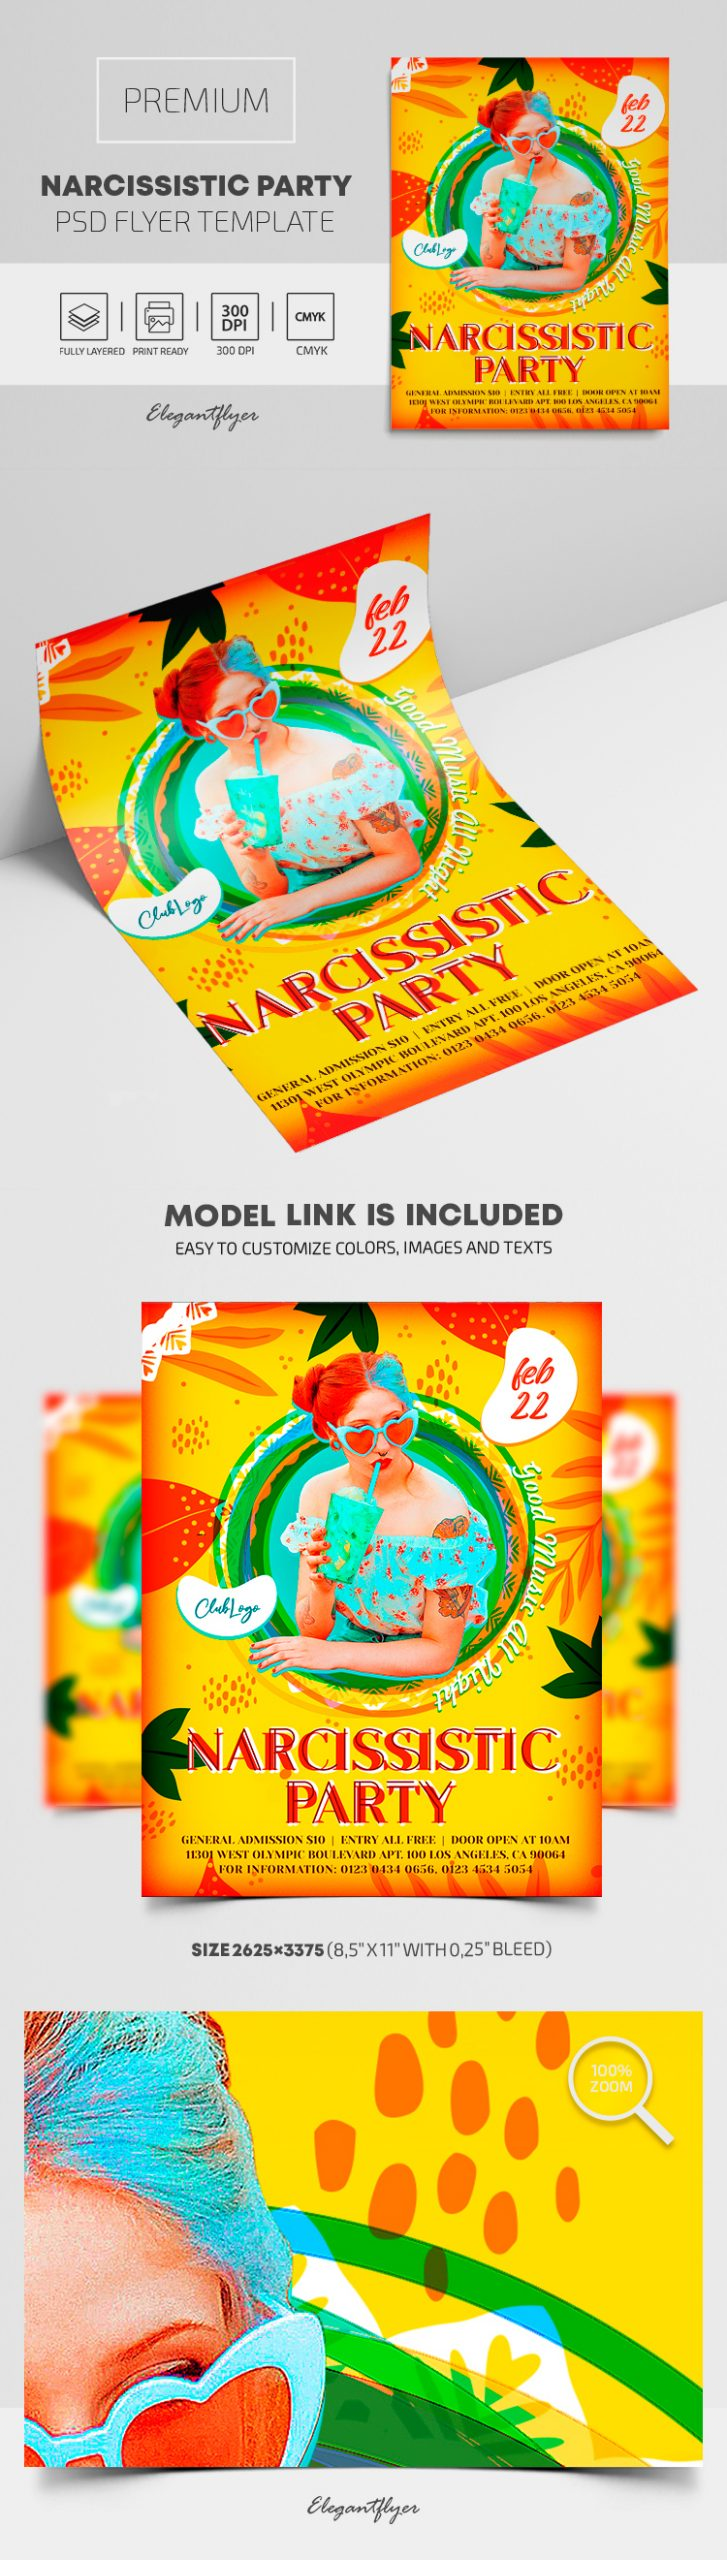 Narcissistic Party – Premium PSD Flyer Template